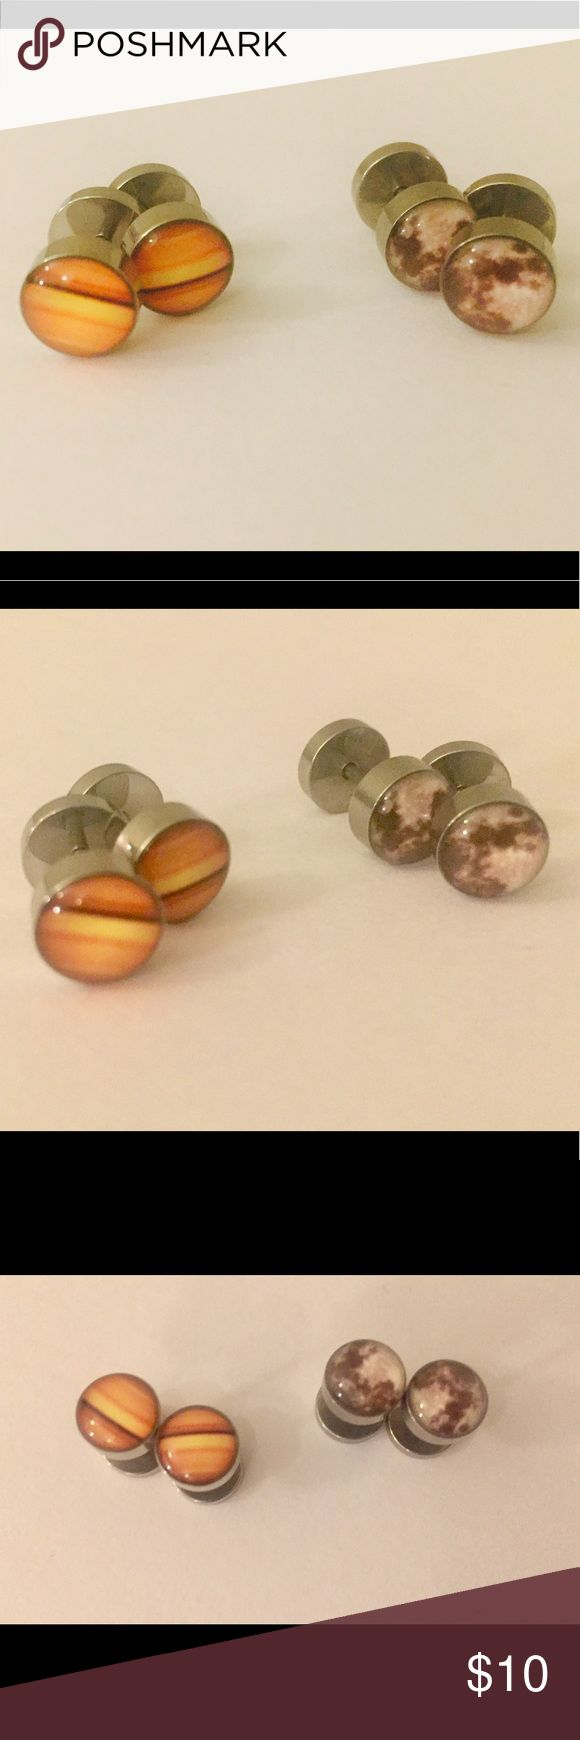 "NWOT- Galaxy/Planet Stainless Steel Earrings New without tags!  Barbell style (""plug look"") Gage is 16G (1.2mm) Pin length 5mm Stainless Steel, perfect for sensitive ears.  Screw on backing. Jewelry Earrings"